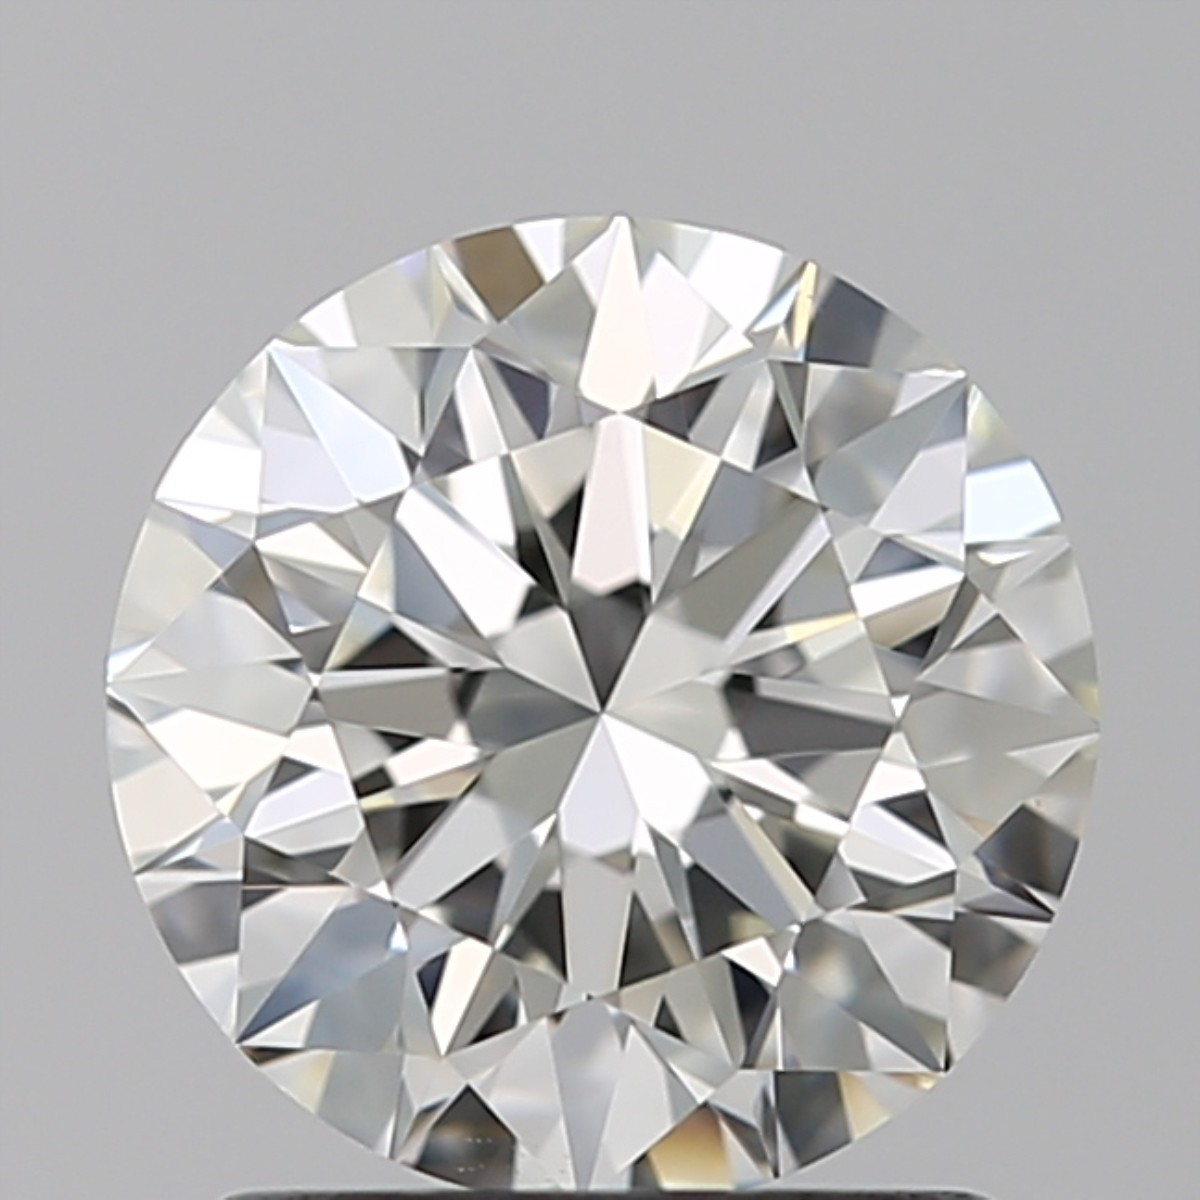 1.29 Carat Round Brilliant Diamond (I/VS1)